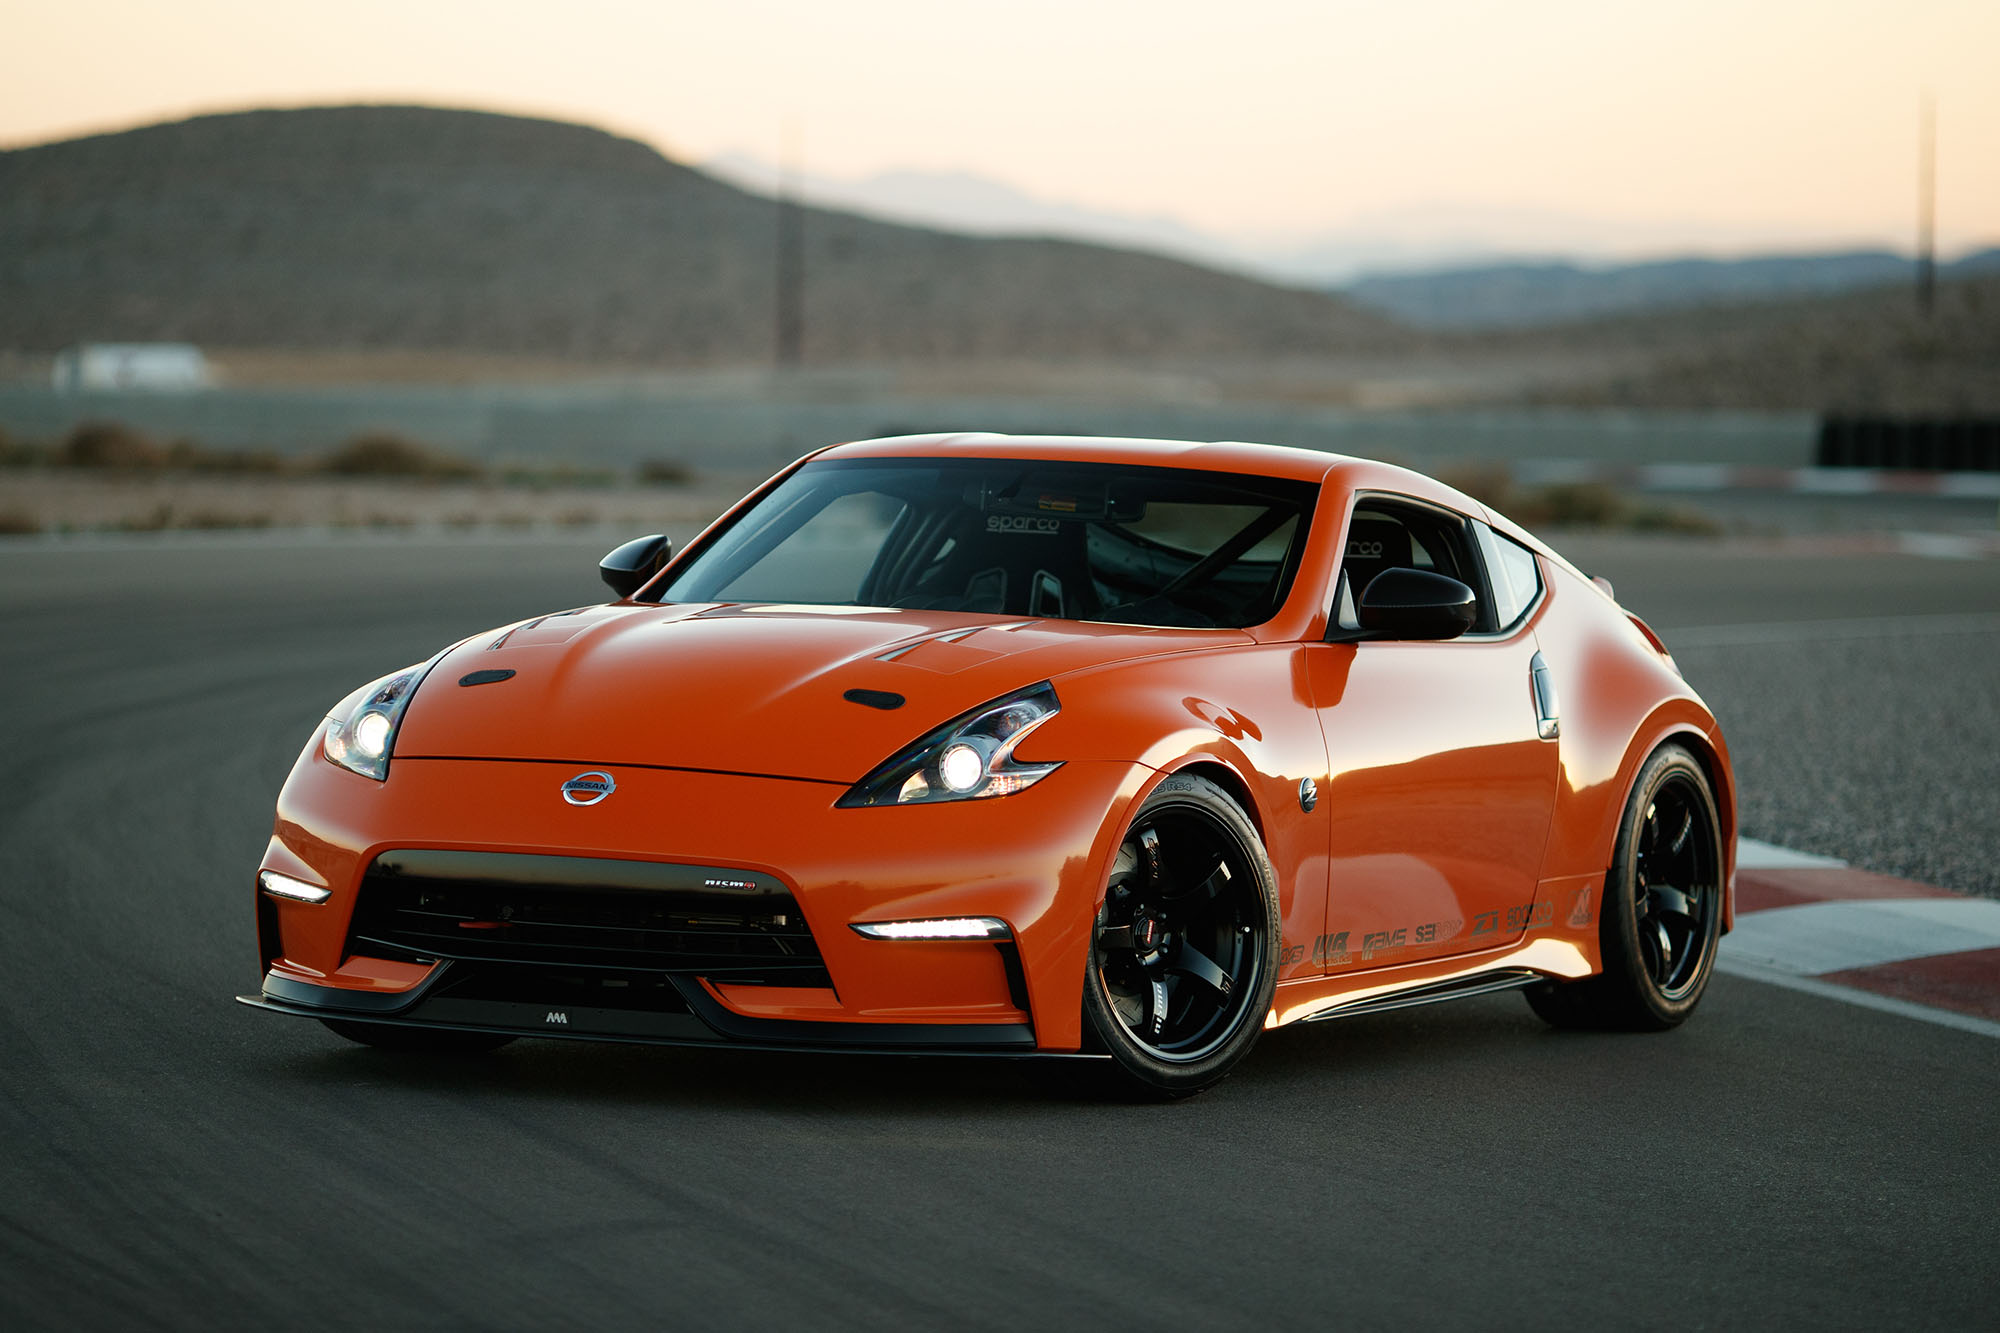 Nissan 370Z NISMO with a Twin-Turbo VR30DDTT V6 – Engine